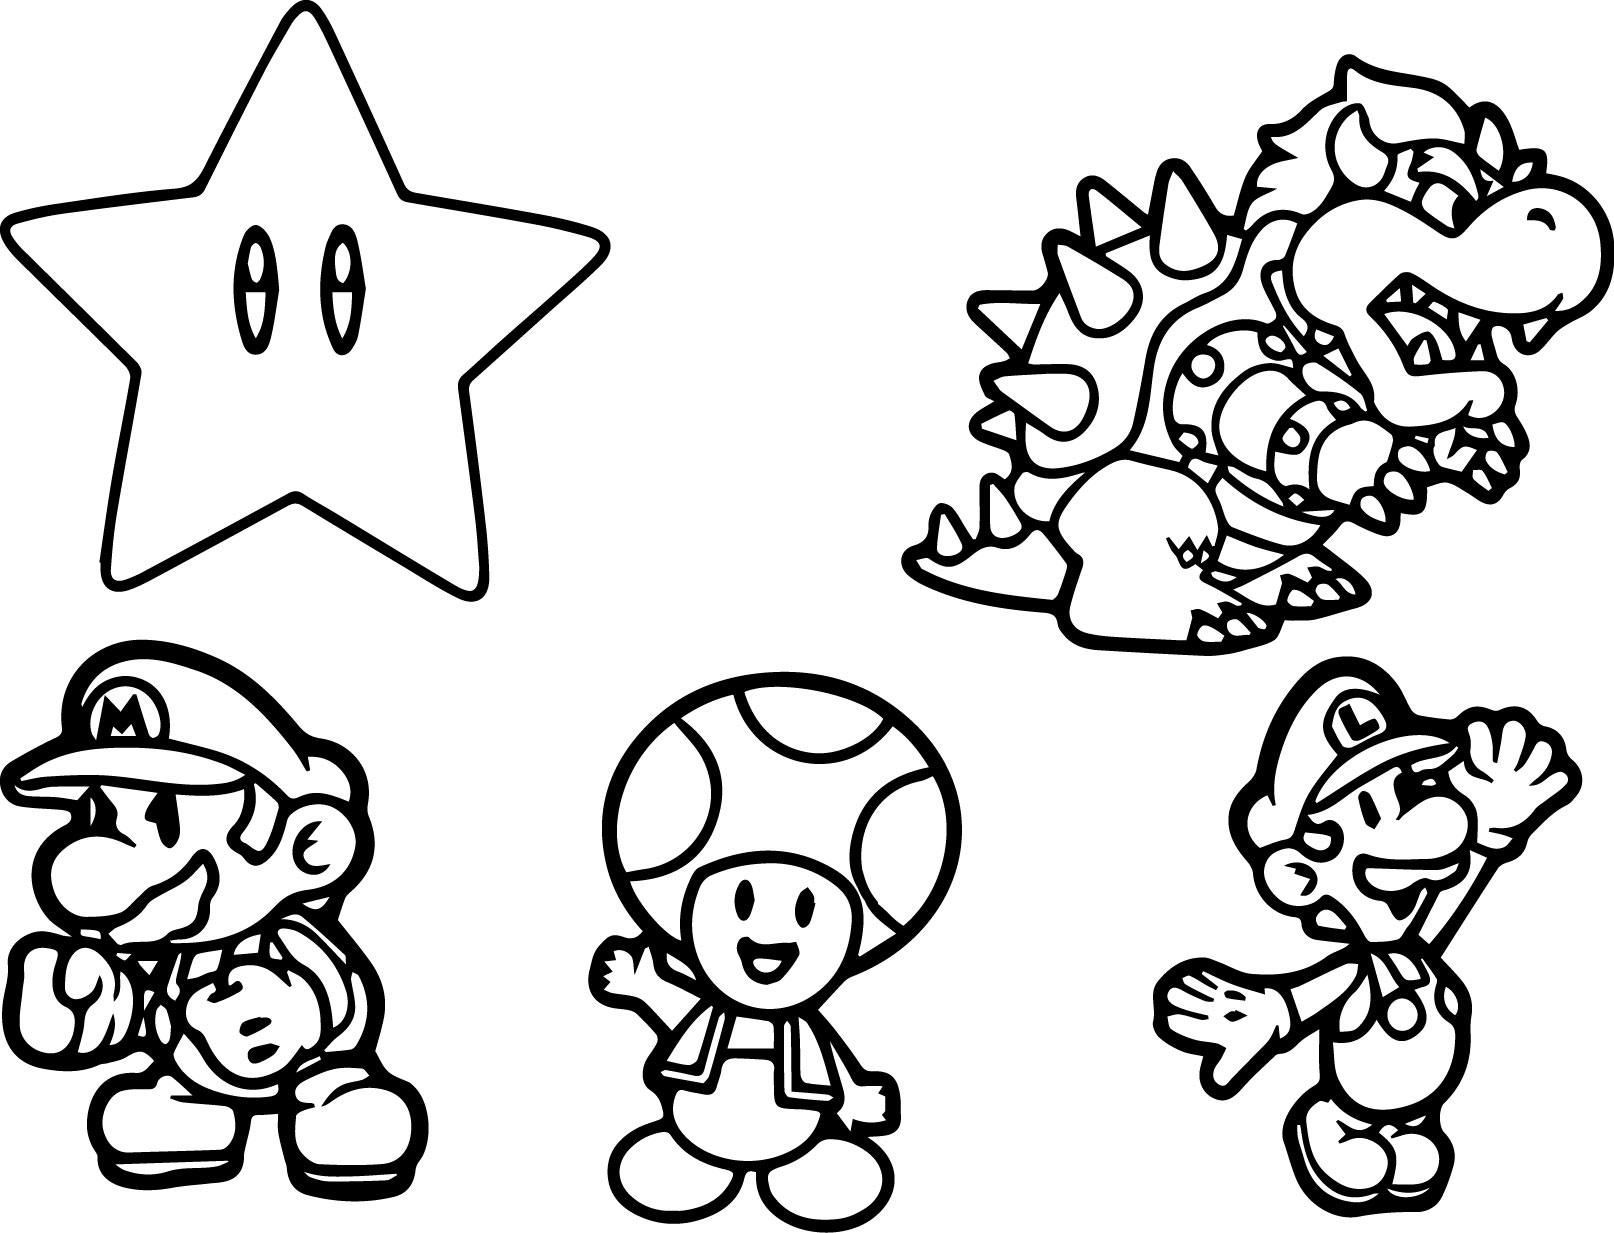 mario bros characters coloring pages at getdrawings  free